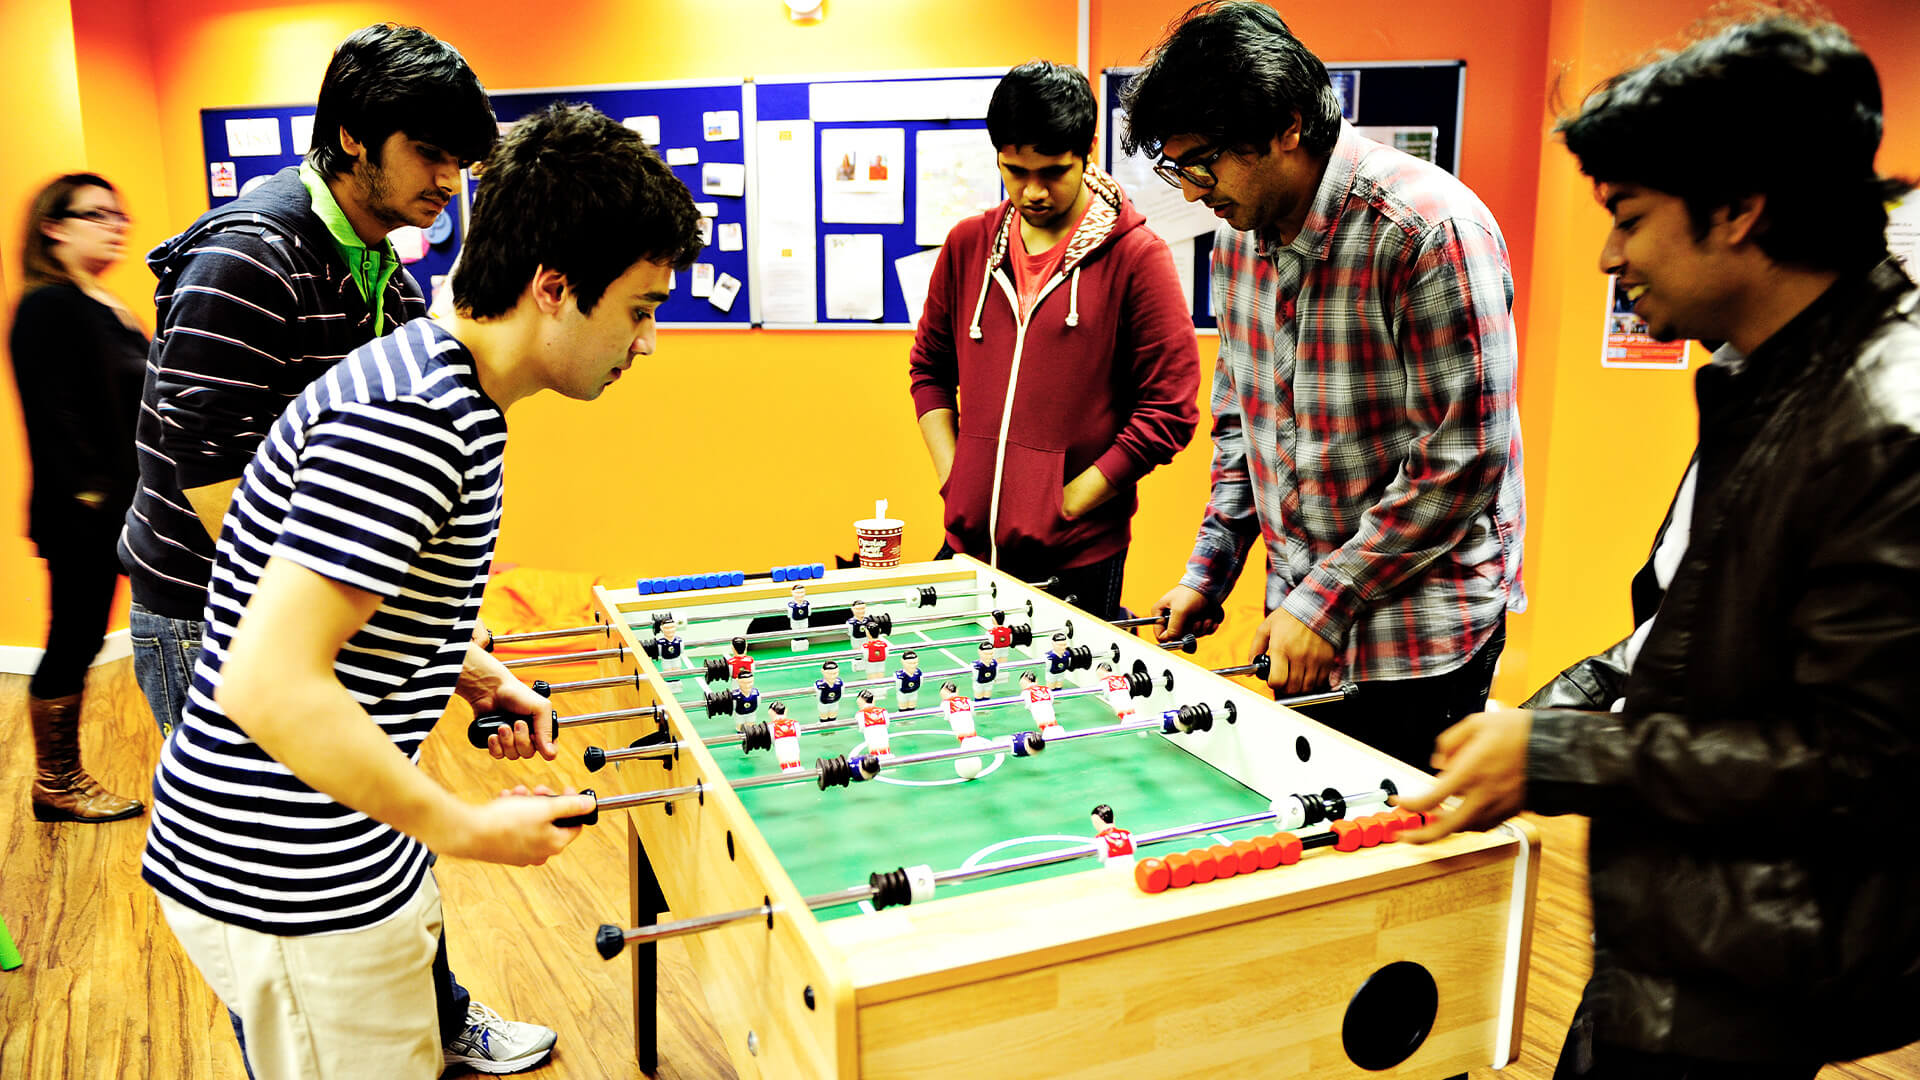 Students socialising in a break-out area at INTO Manchester